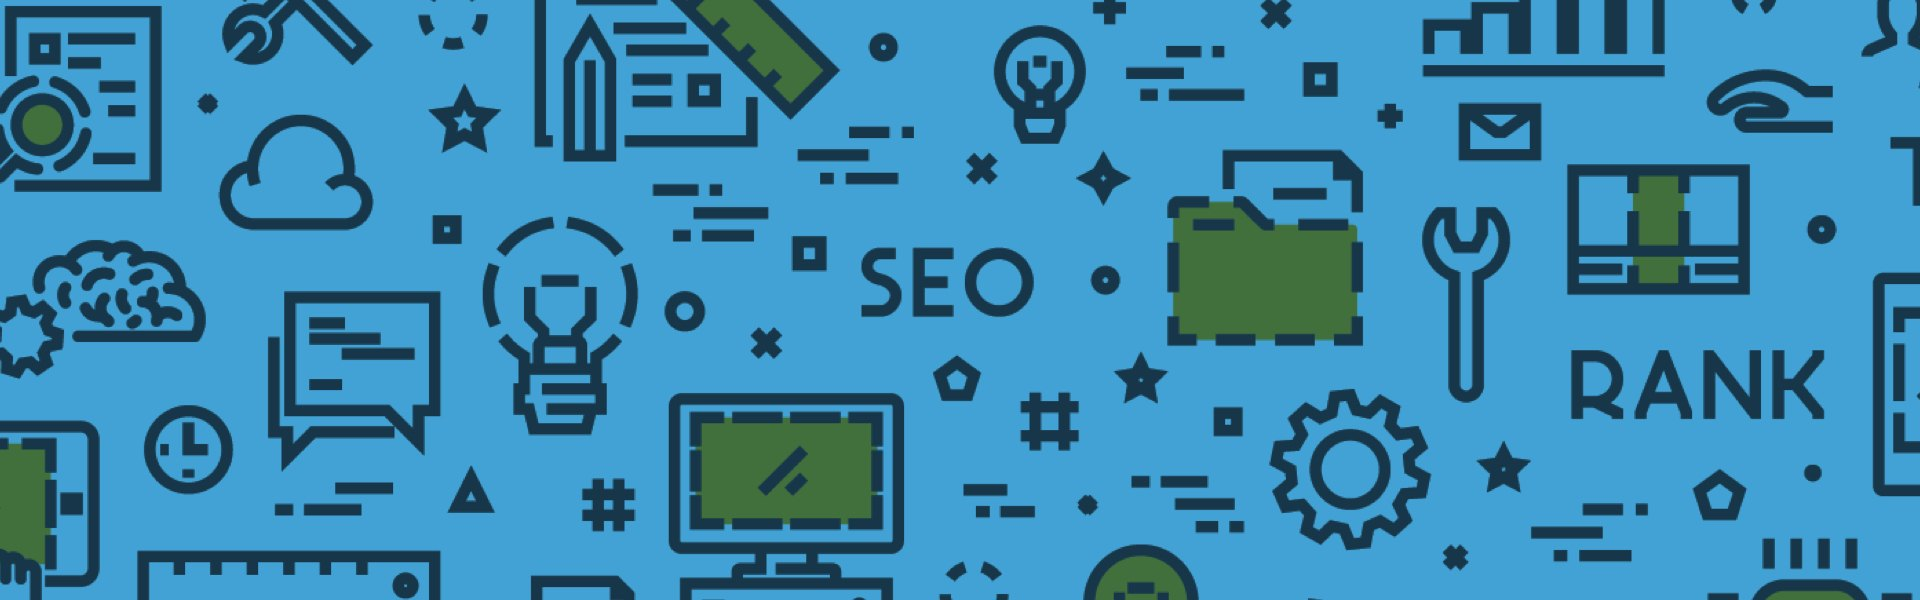 How To Do SEO For Your Own Website Part 3: Content Is Most Important